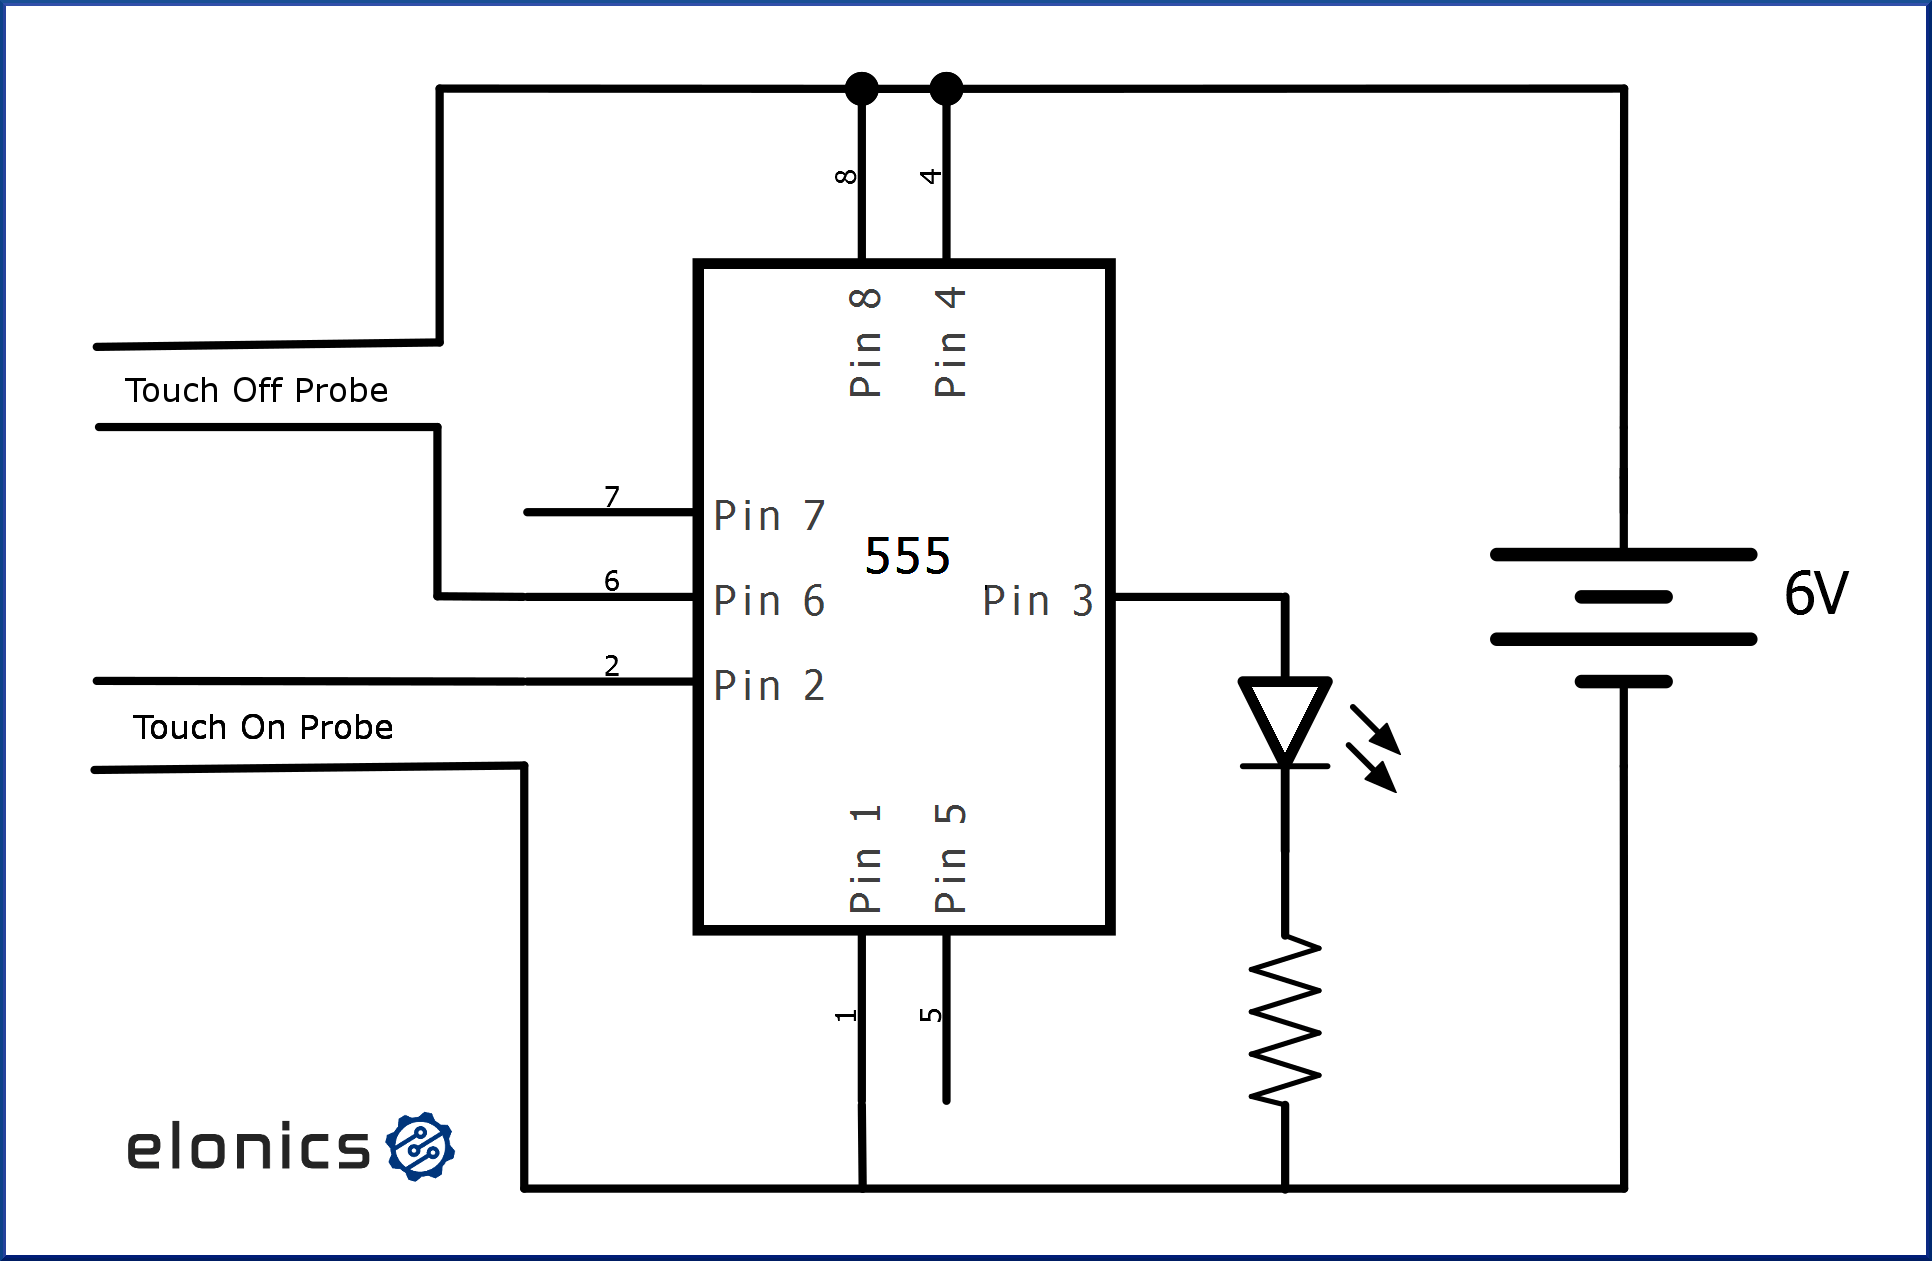 off delay timer wiring diagram cat6a for on lights